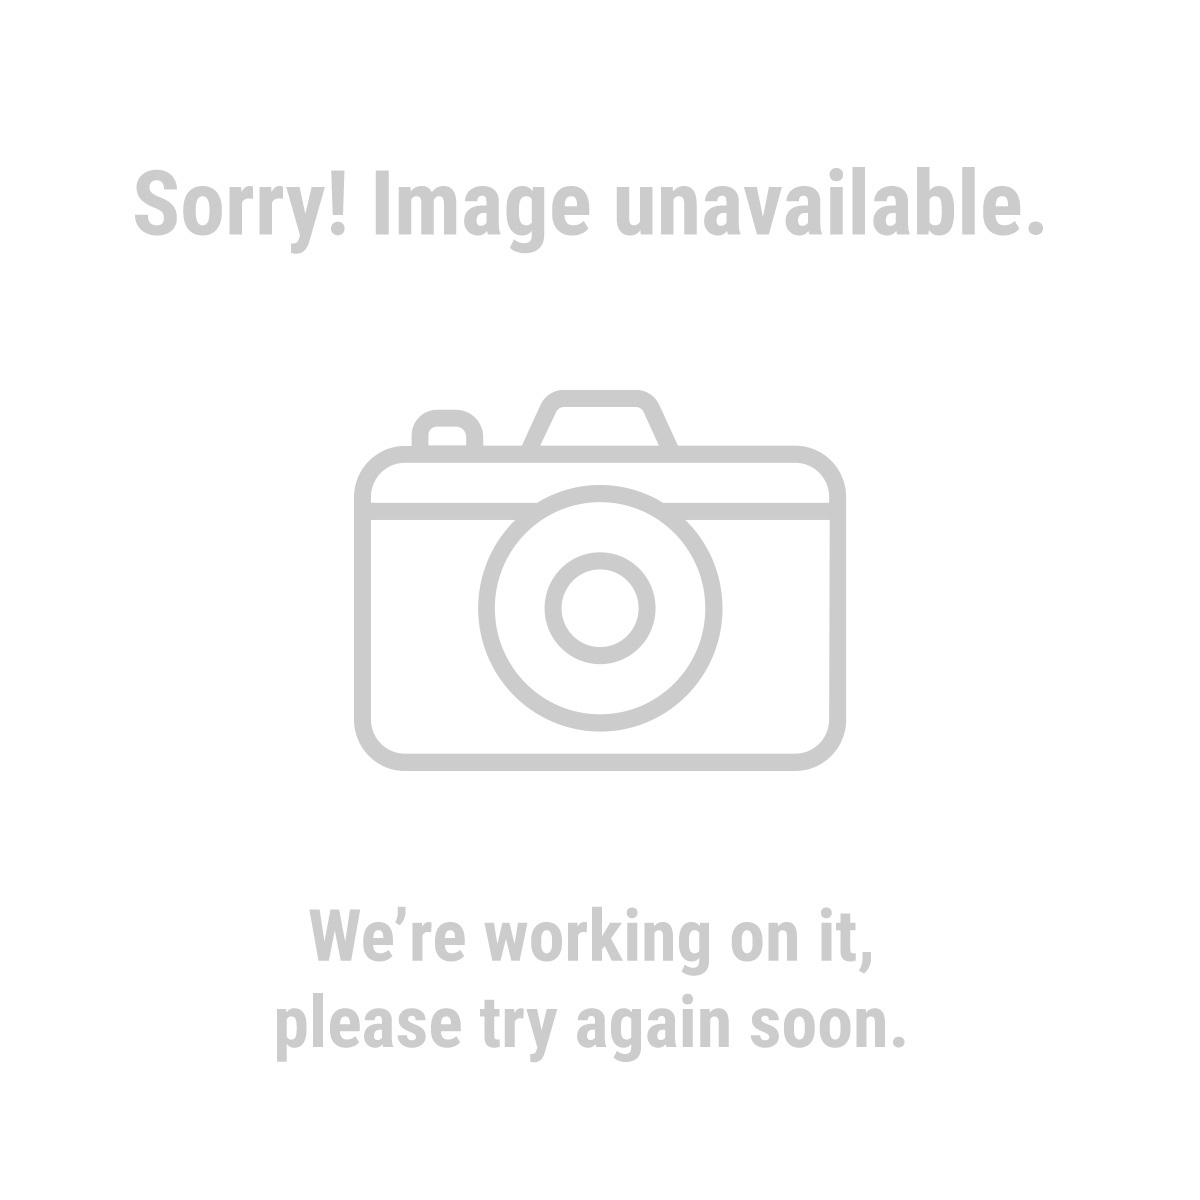 Chicago Electric Power Tools Pro 69325 Folding Tile Saw Stand with Wheels